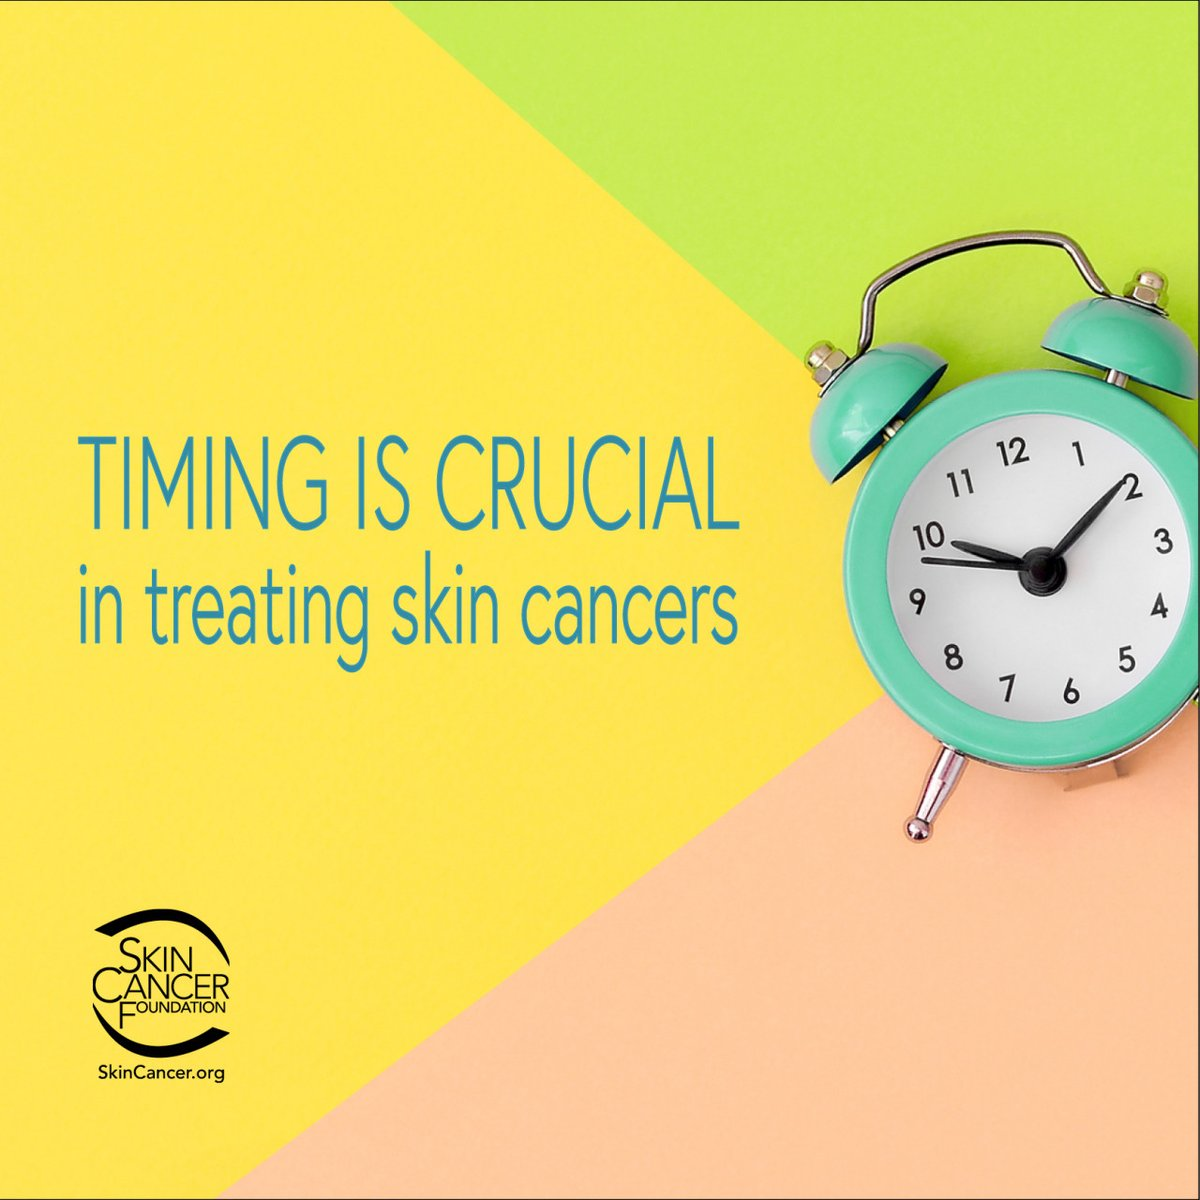 Can you leave your #skincancer alone? Two of our physician experts answer why, when you've been diagnosed with a skin cancer, time is of the essence. bit.ly/SCTiming